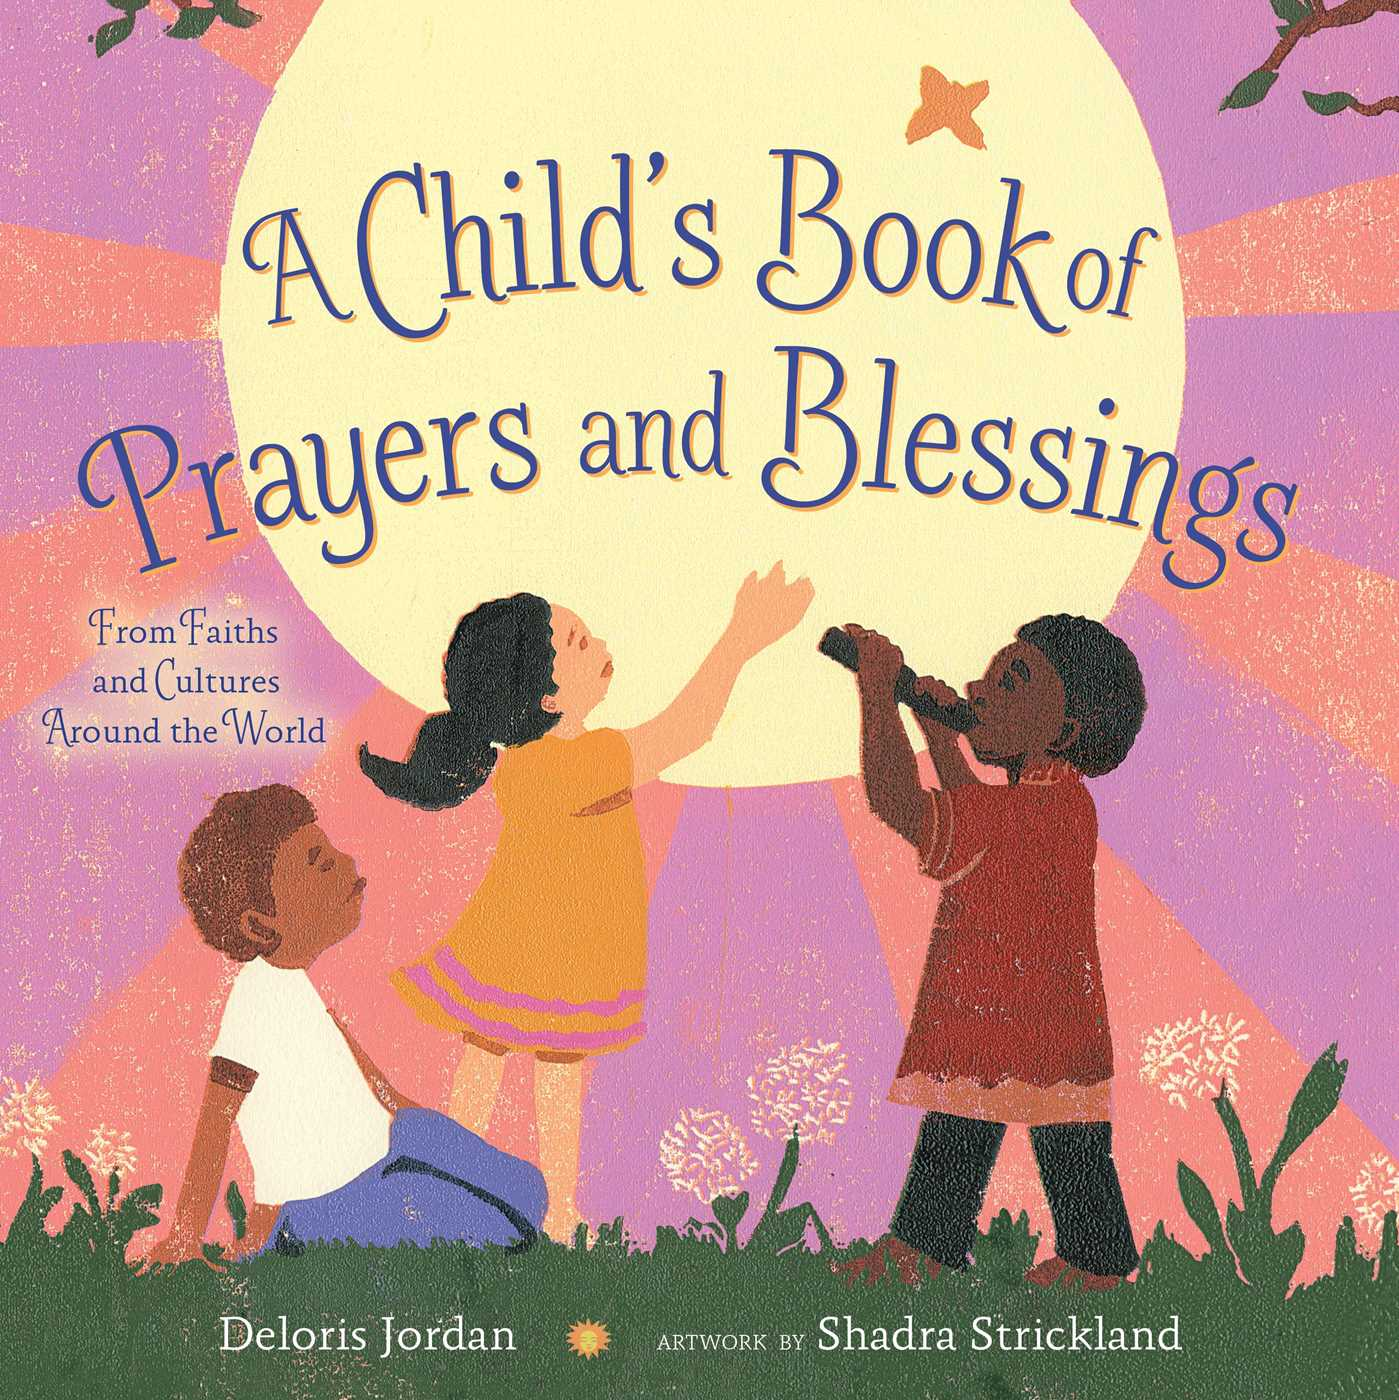 A childs book of prayers and blessings 9781416995500 hr